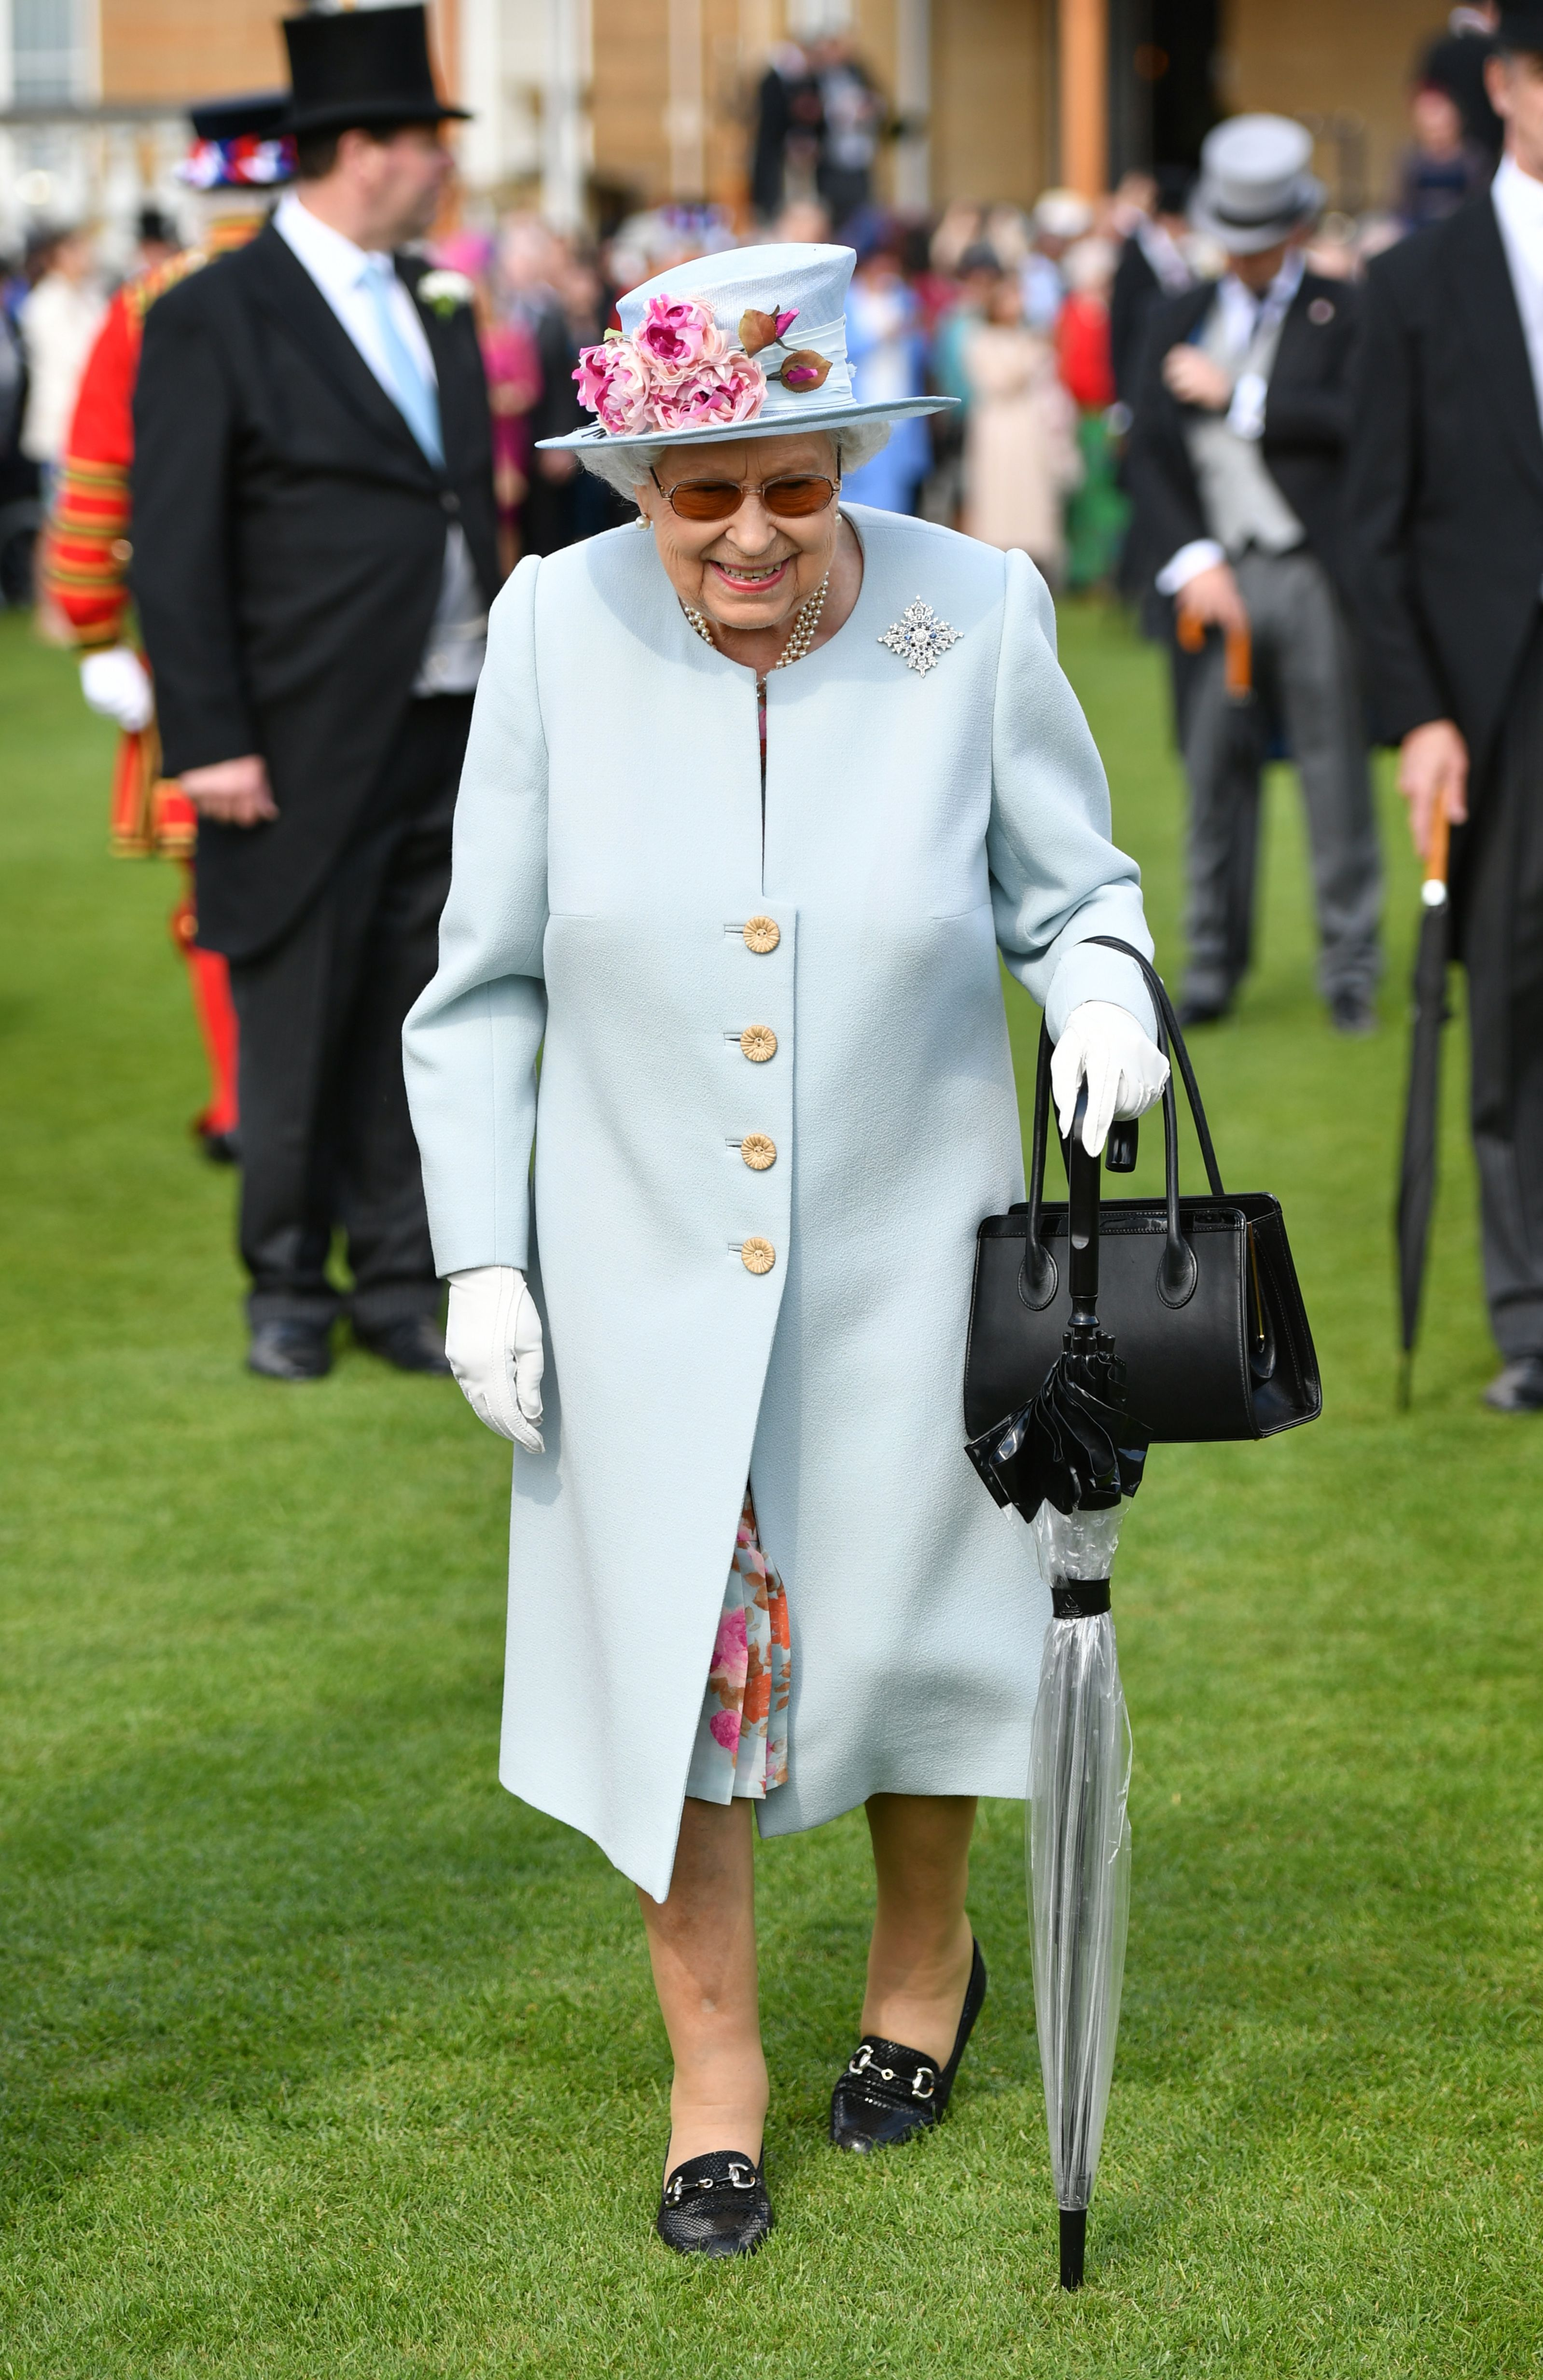 Queen Elizabeth Garden Party